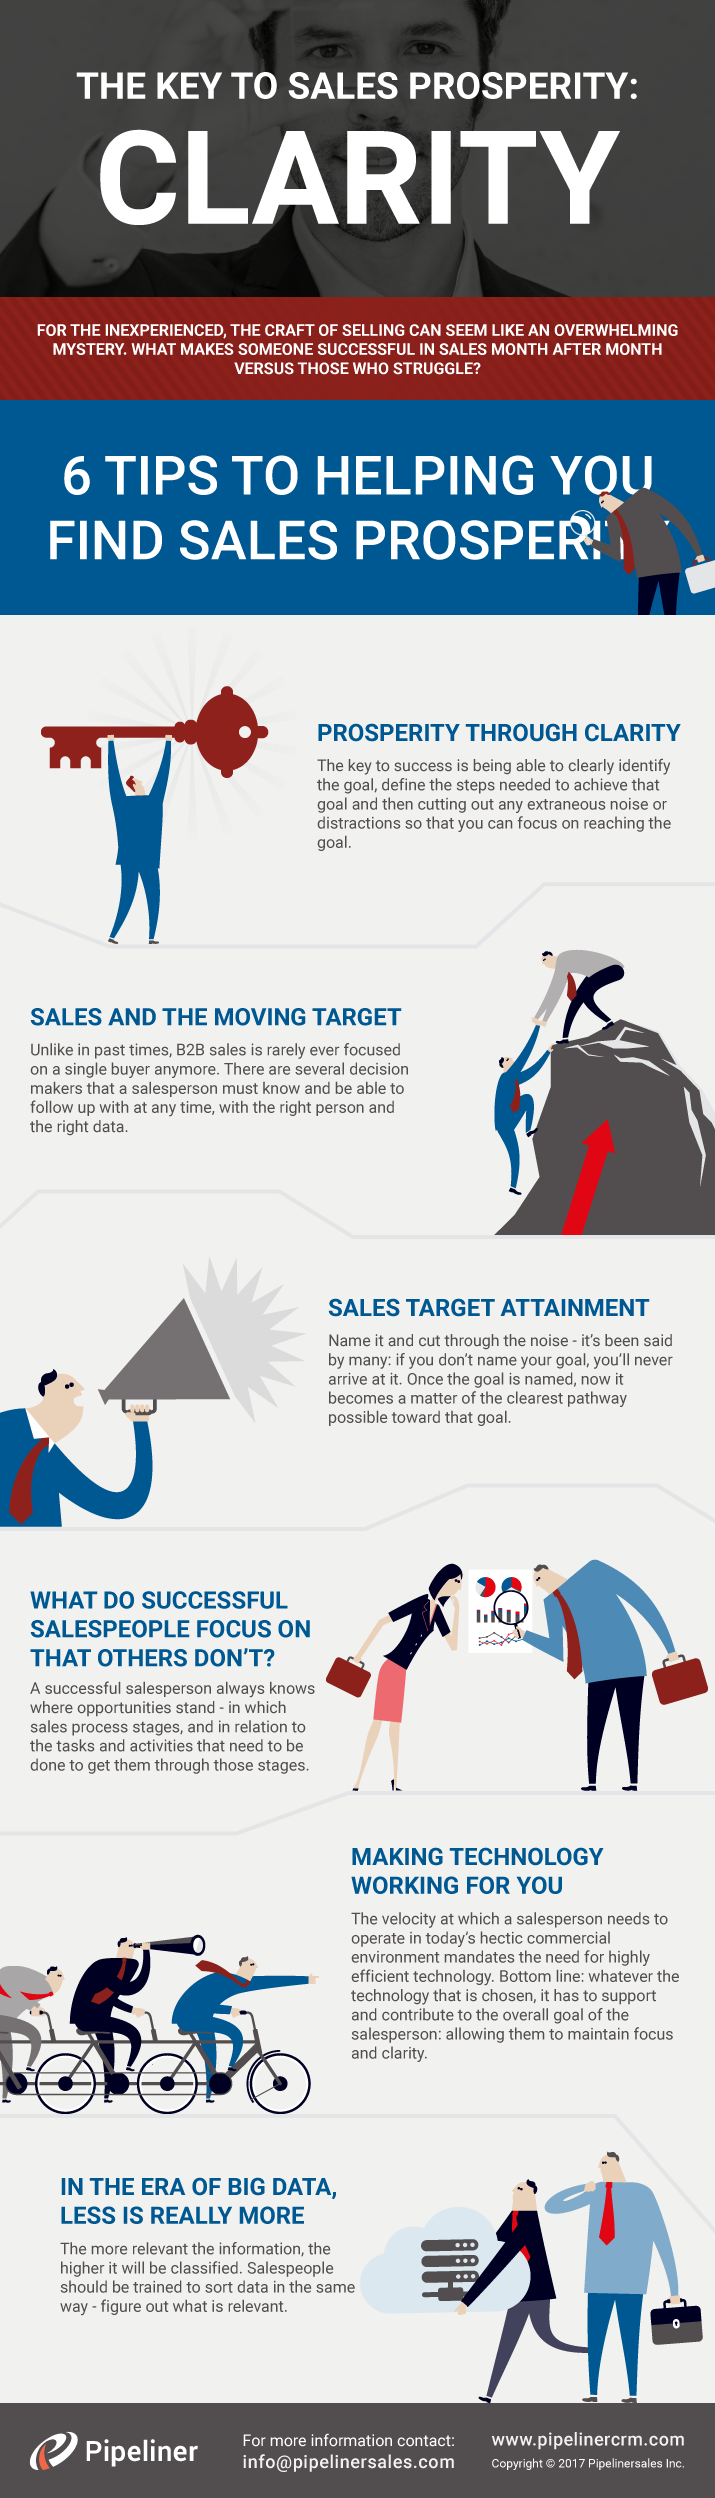 Key to Sales Prosperity: Clarity Infographic